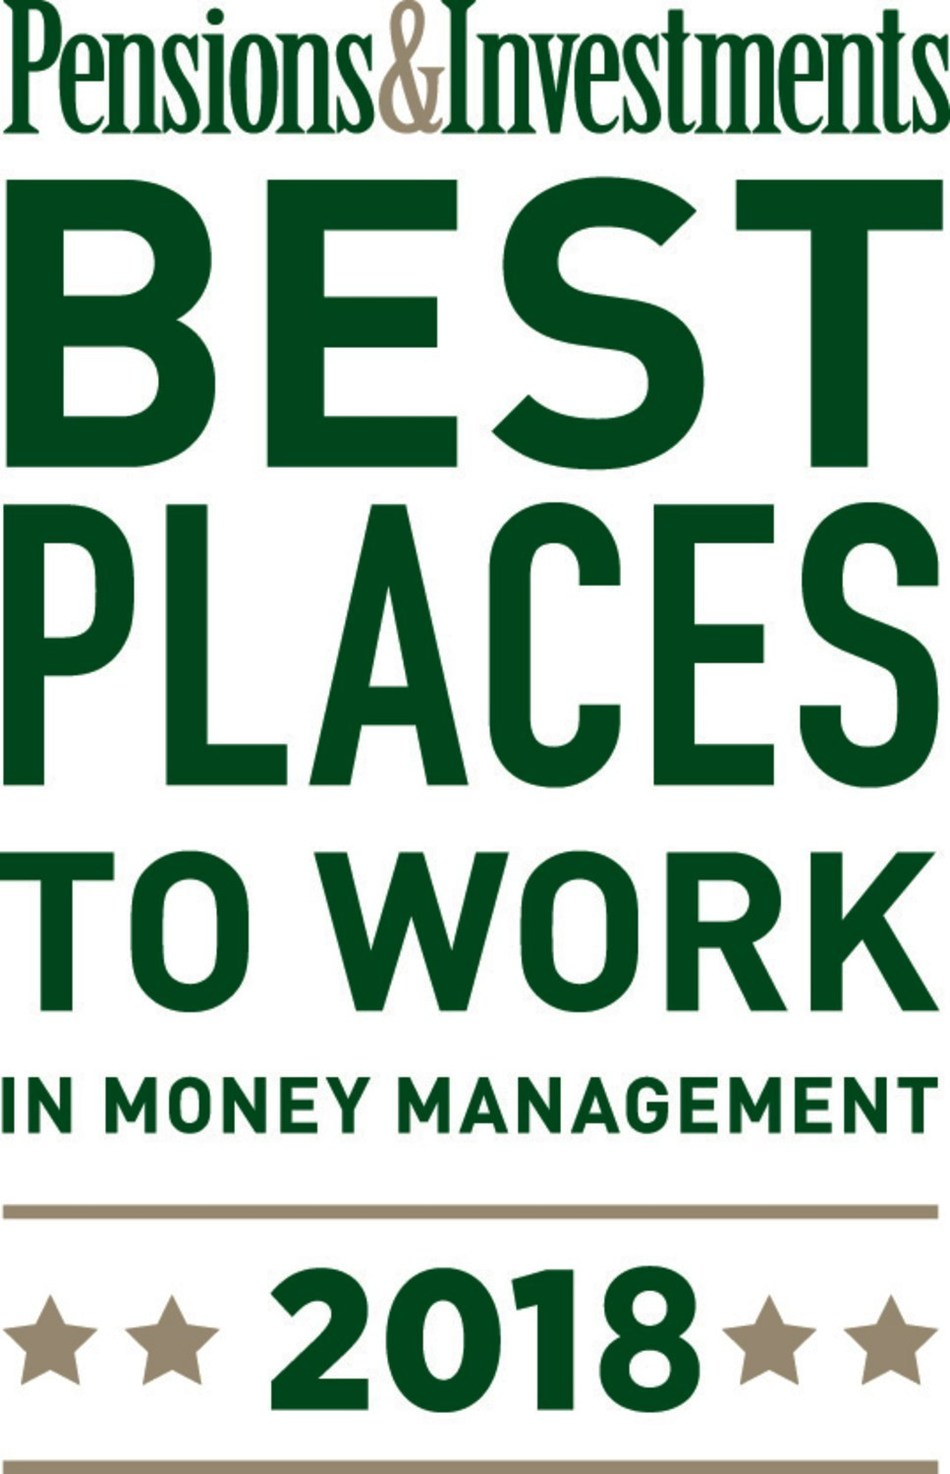 Highland Capital Management wins a 2018 Best Places to Work in Money Management award from Pensions & Investments